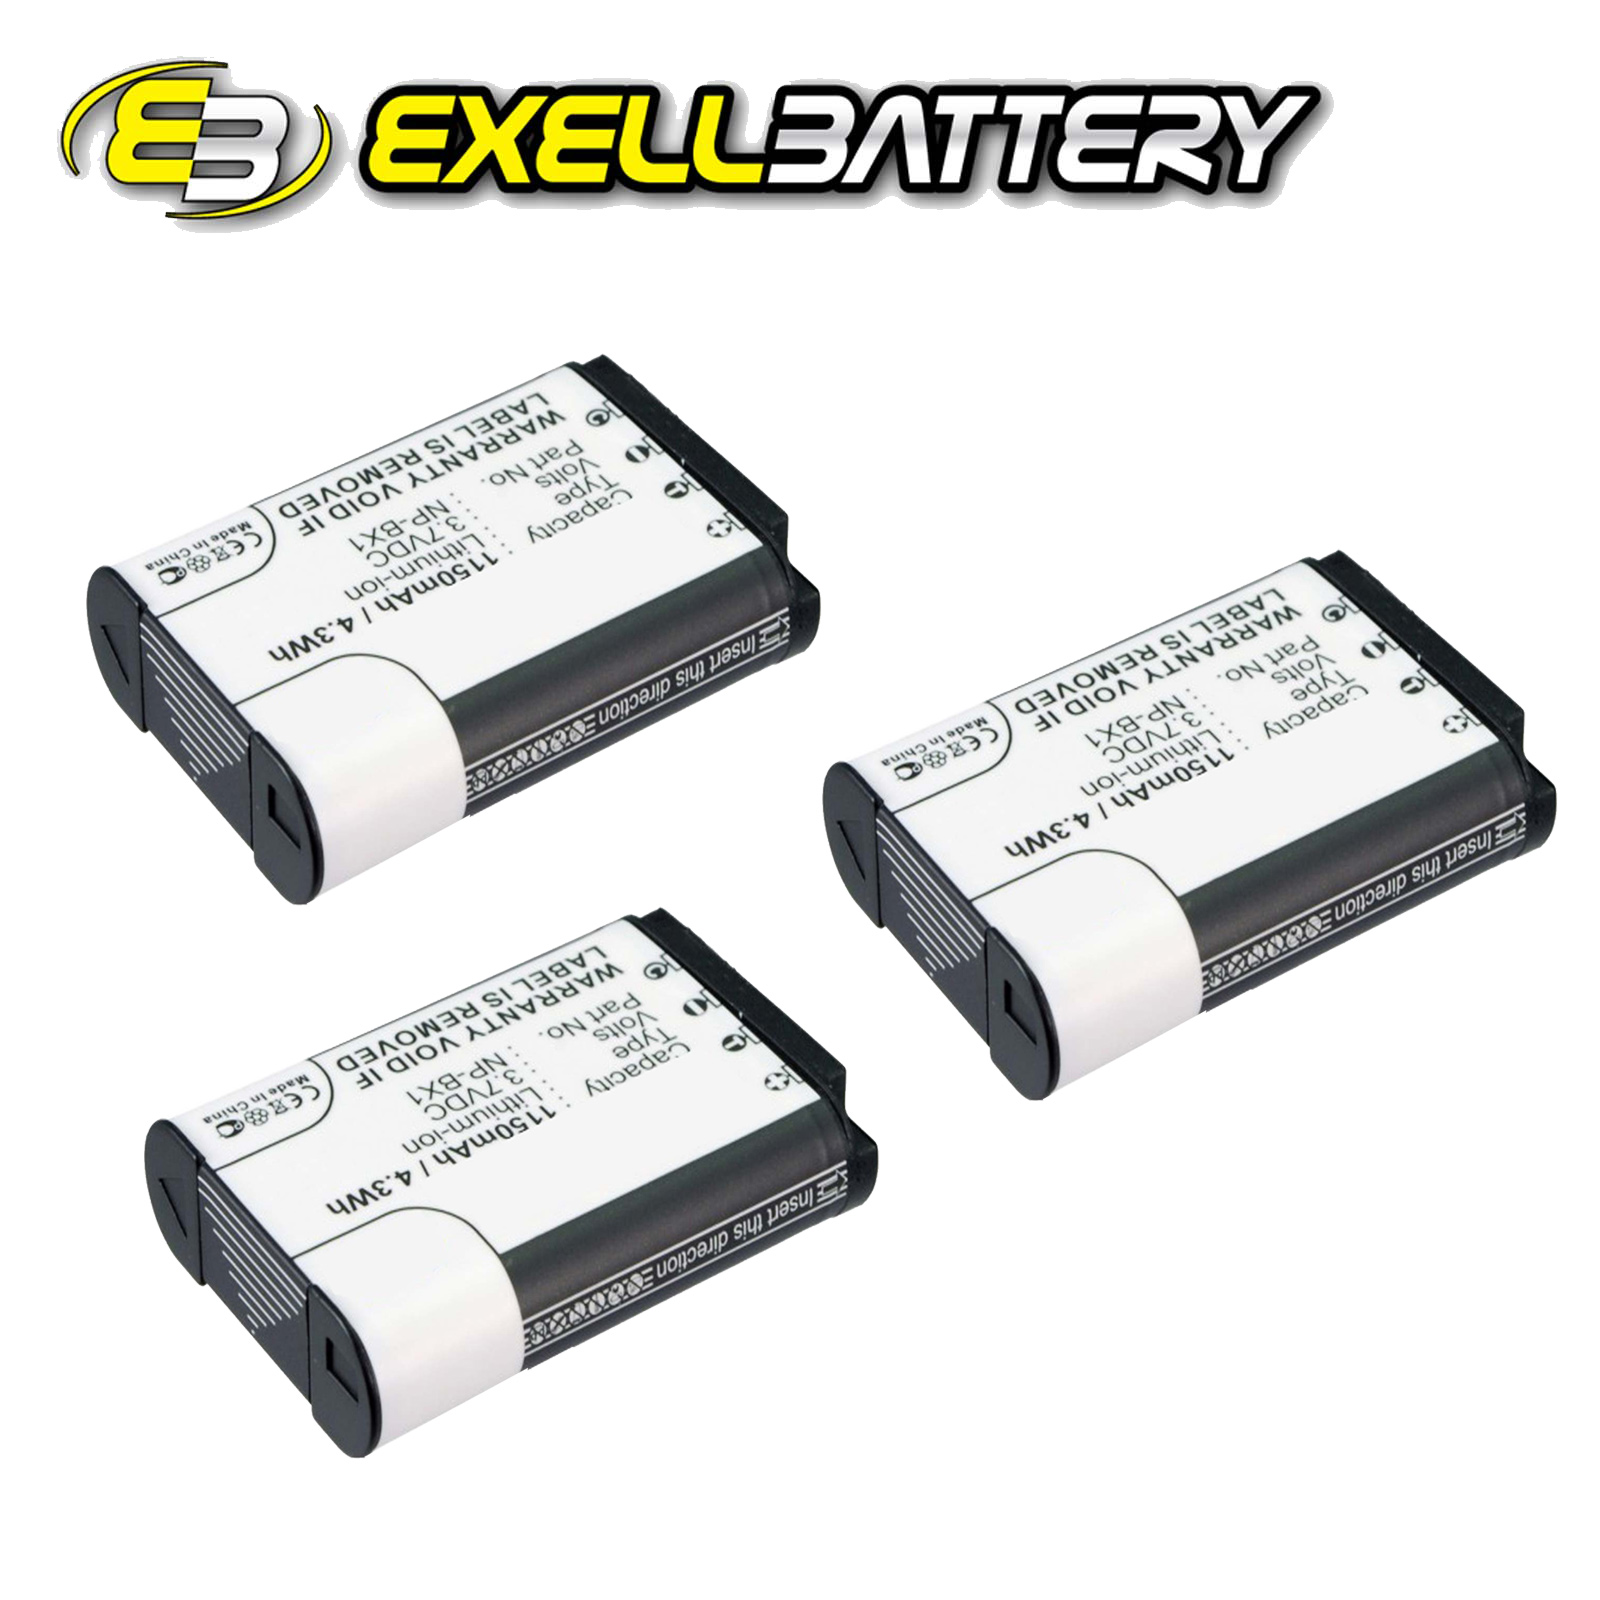 3x 3.7V 1150mAh Digital Camera Battery For Sony HD Flash Memory Action Camcorder